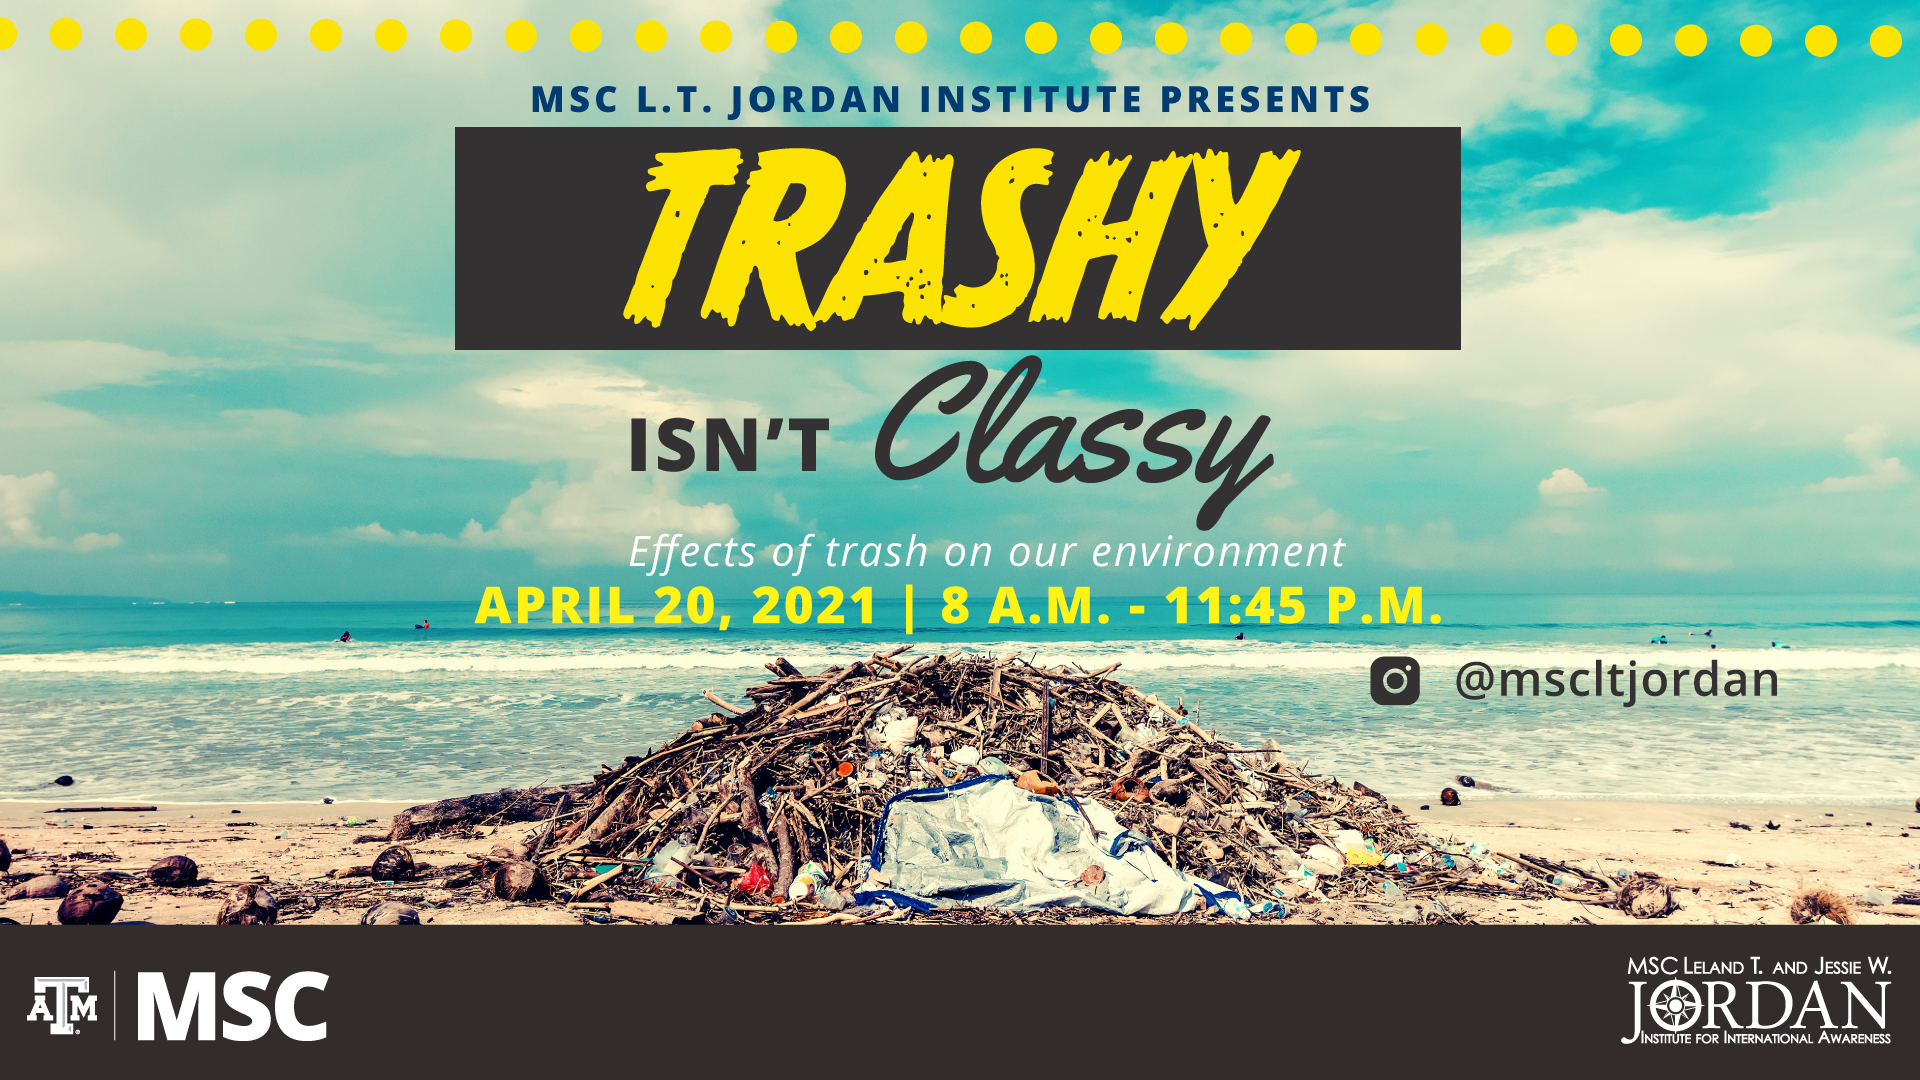 MSC L.T. Jordan Institute Presents: Trashy isn't Classy, Effects of Trash on our environment, April 20, 2021 from 8 a.m. to 11:45 p.m., Instagram @mscltjordan